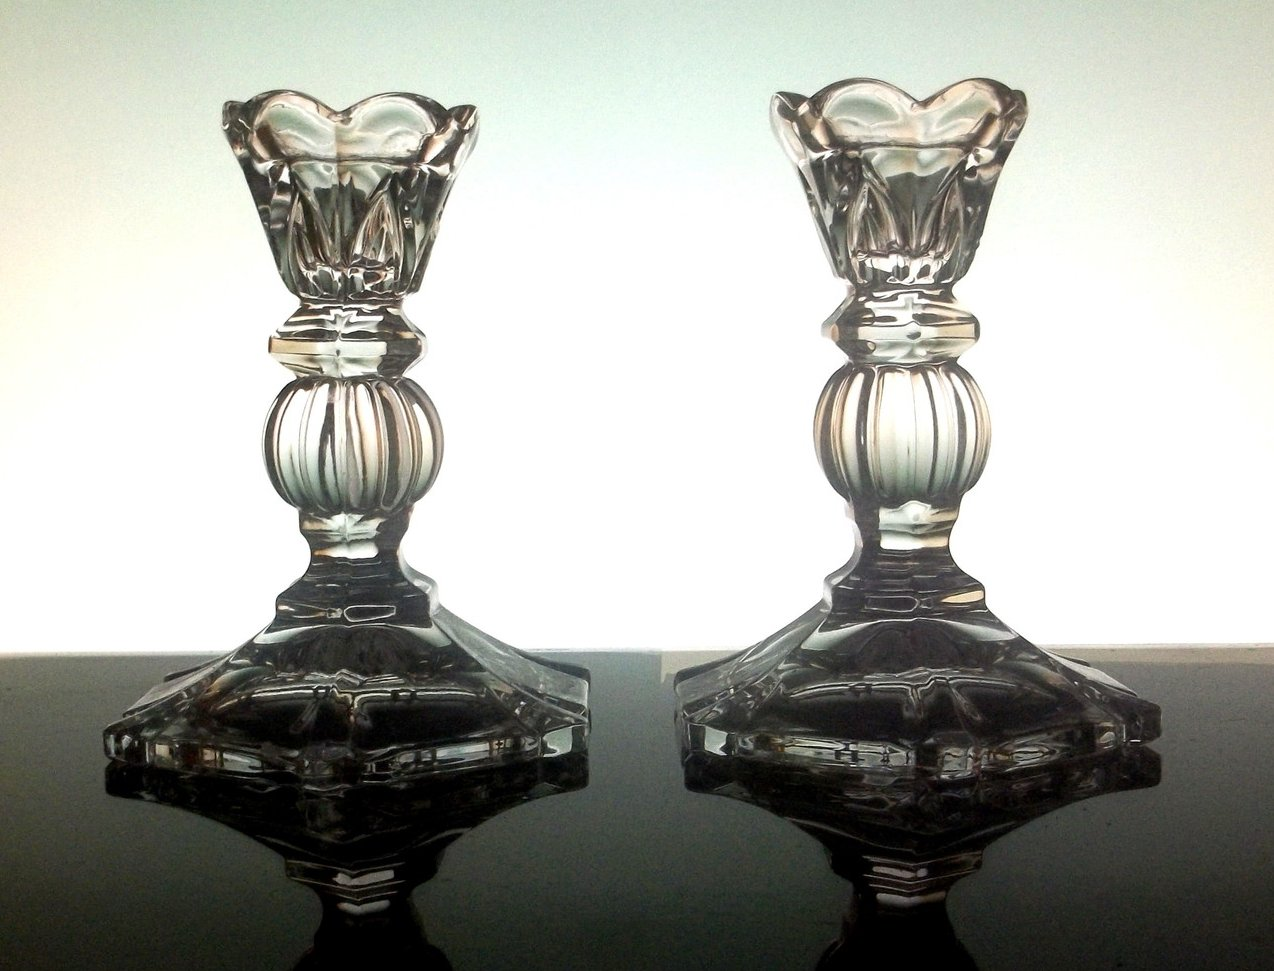 Image 0 of Crystal Candlesticks with Triangular Arches 5 inch Lot of 2